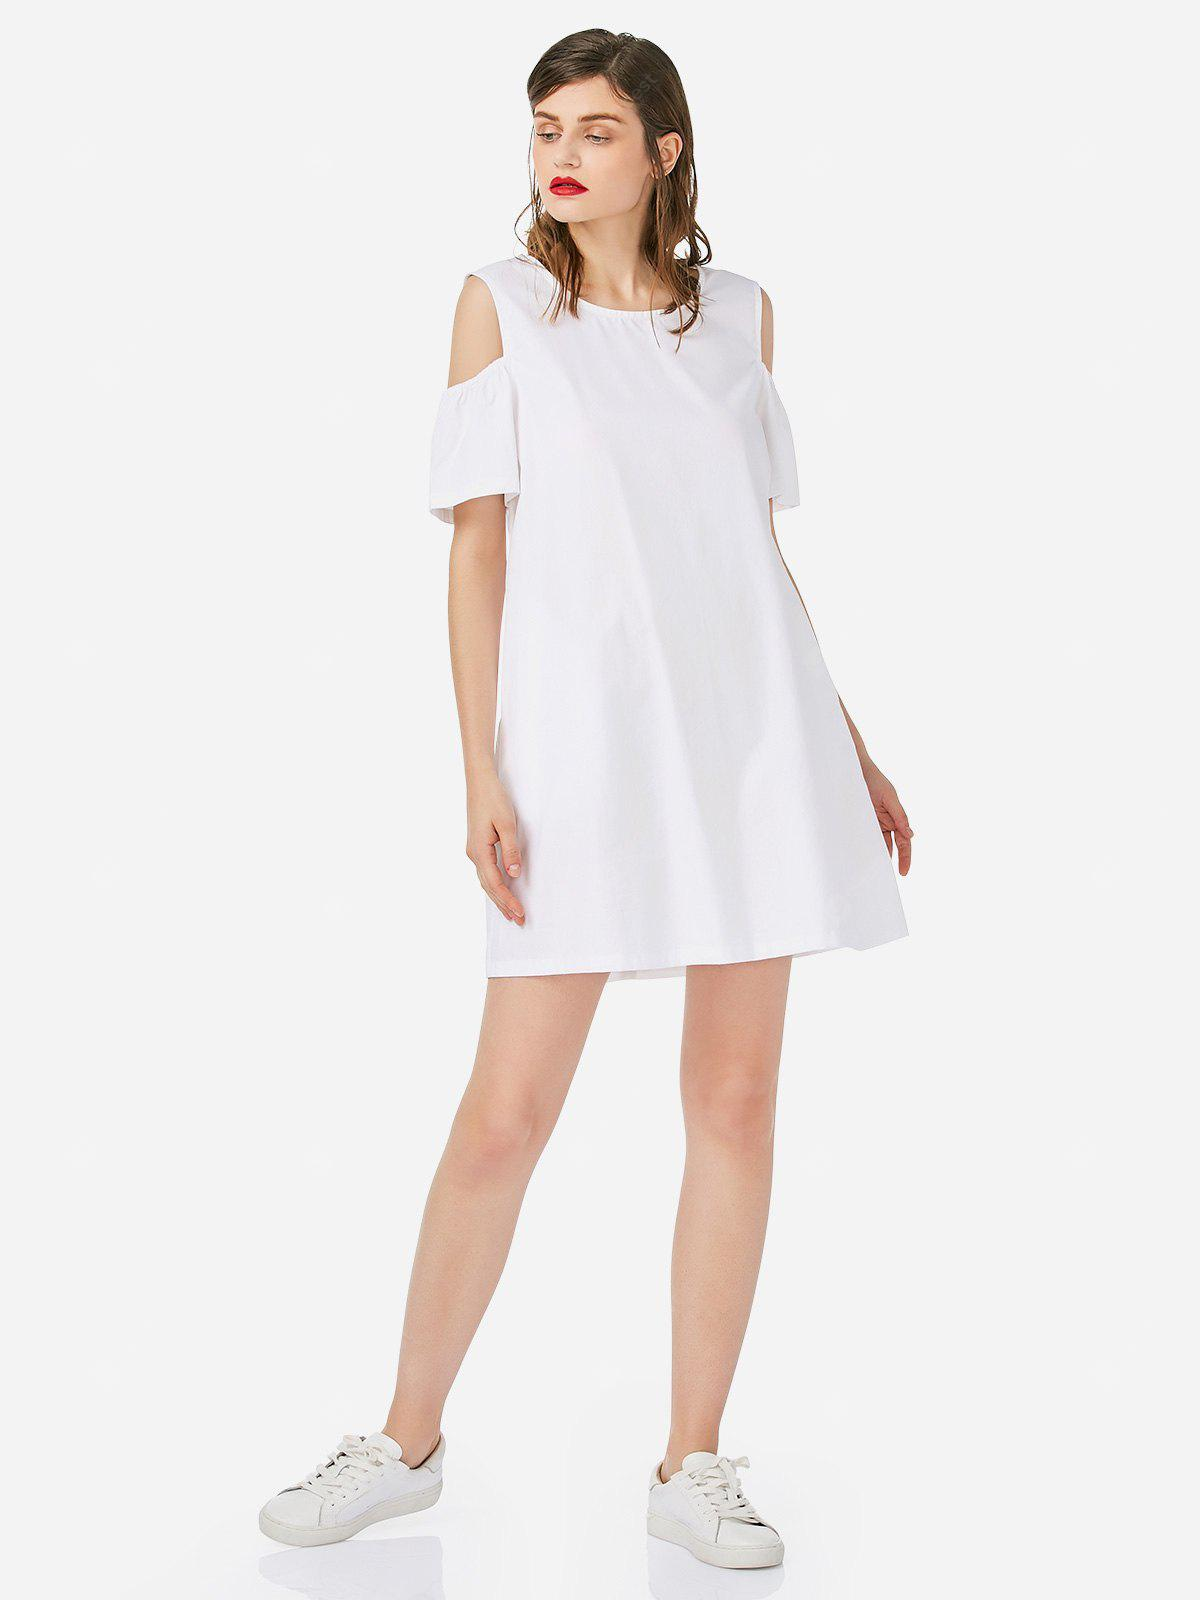 WHITE S Women Open Shoulder Cotton White Dress